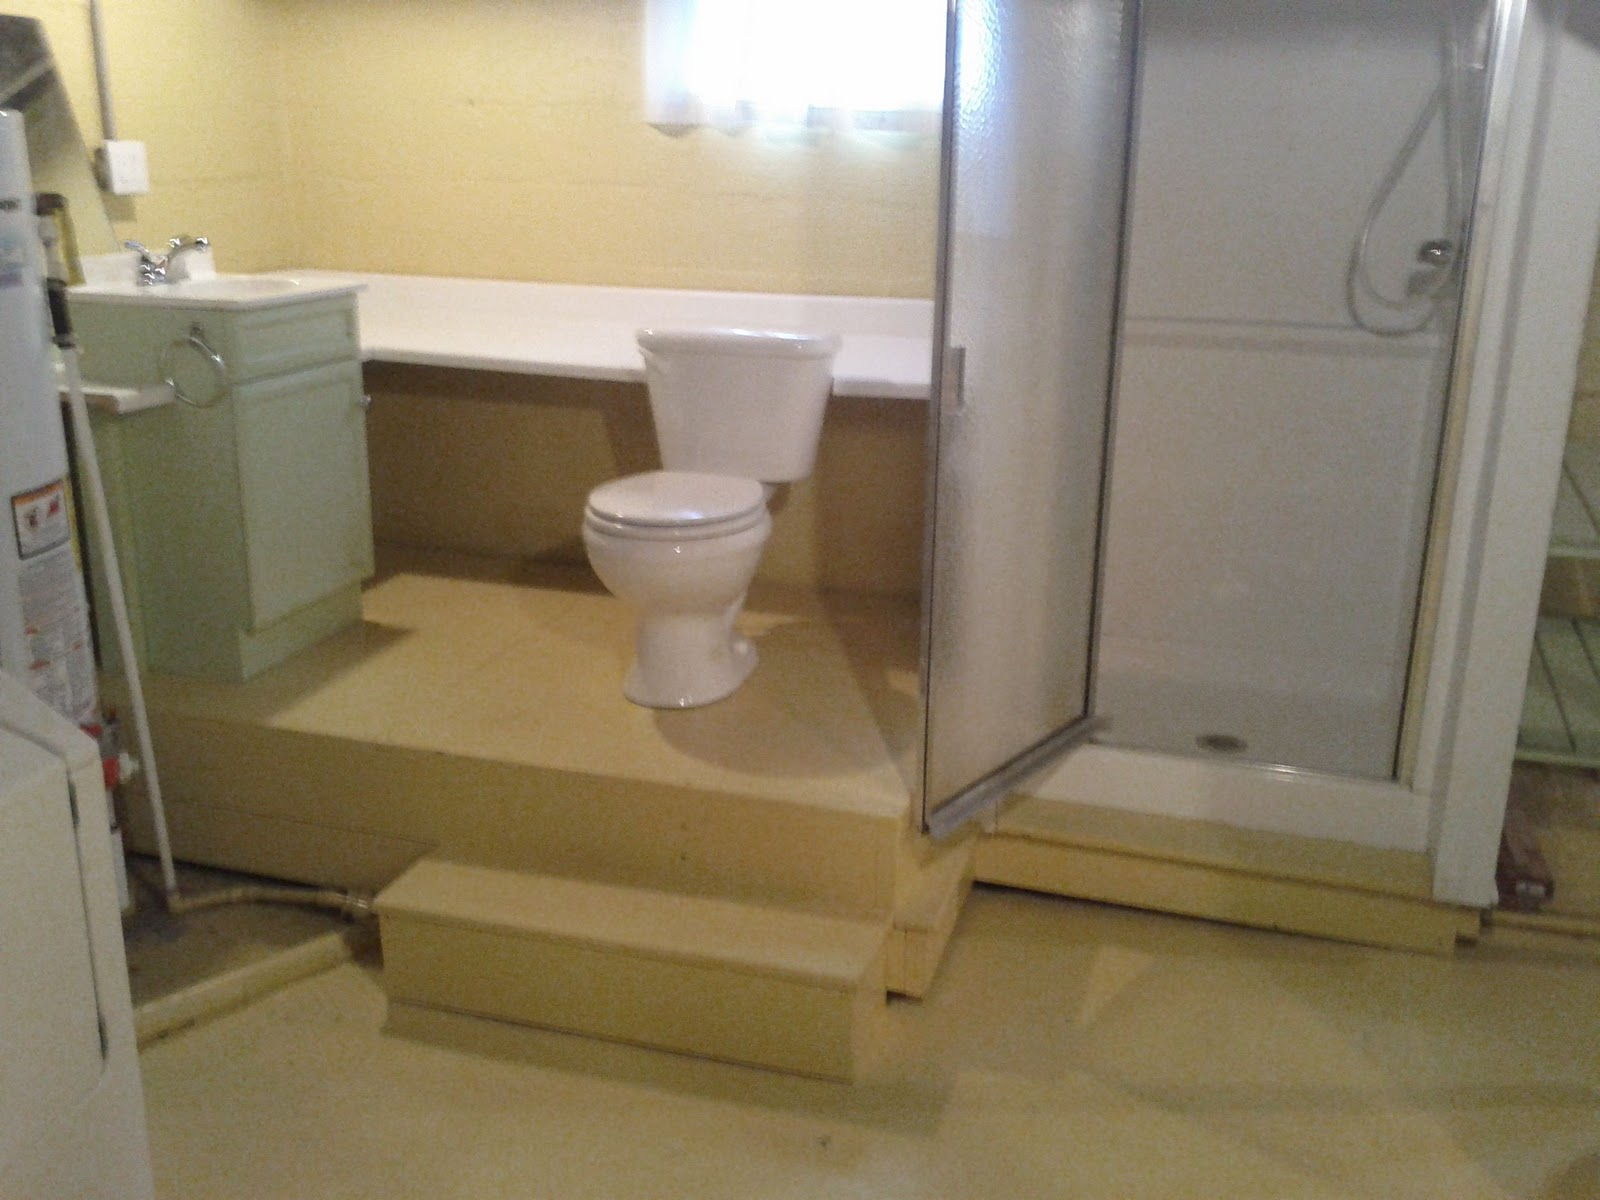 Bathroom remodeling on a budget - Bathroom Remodeling On A Budget